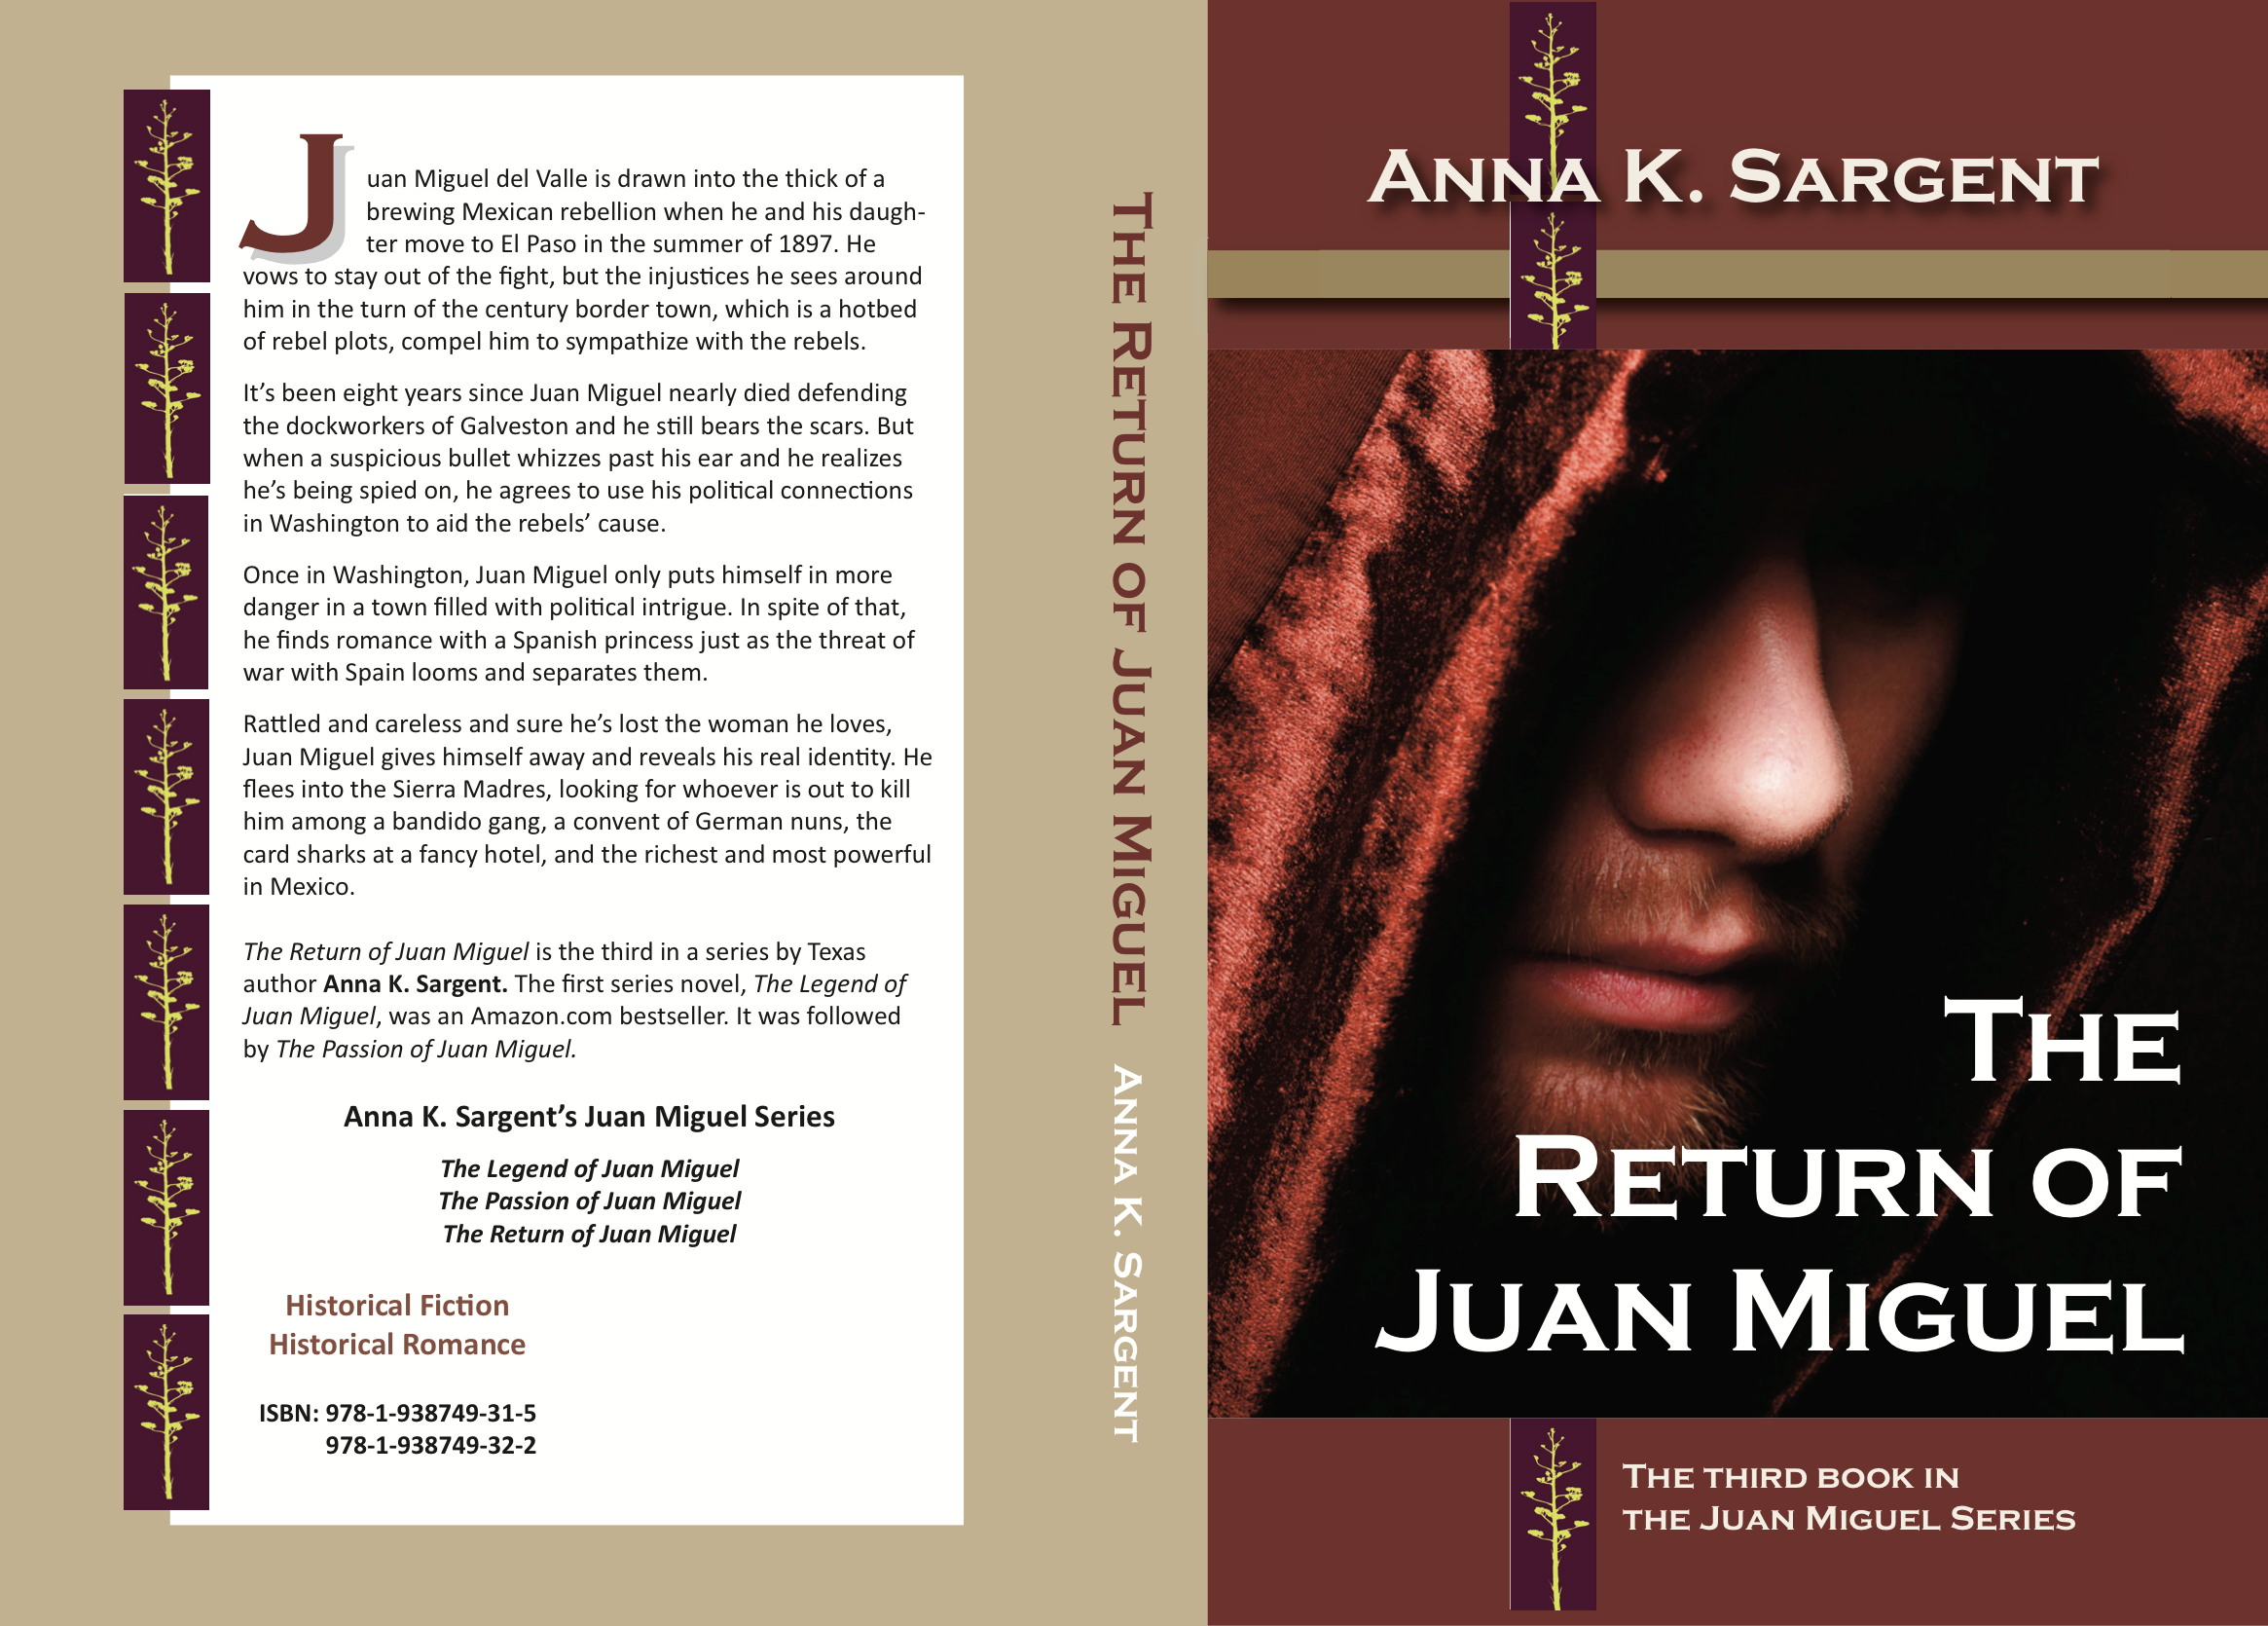 The Return of Juan Miguel